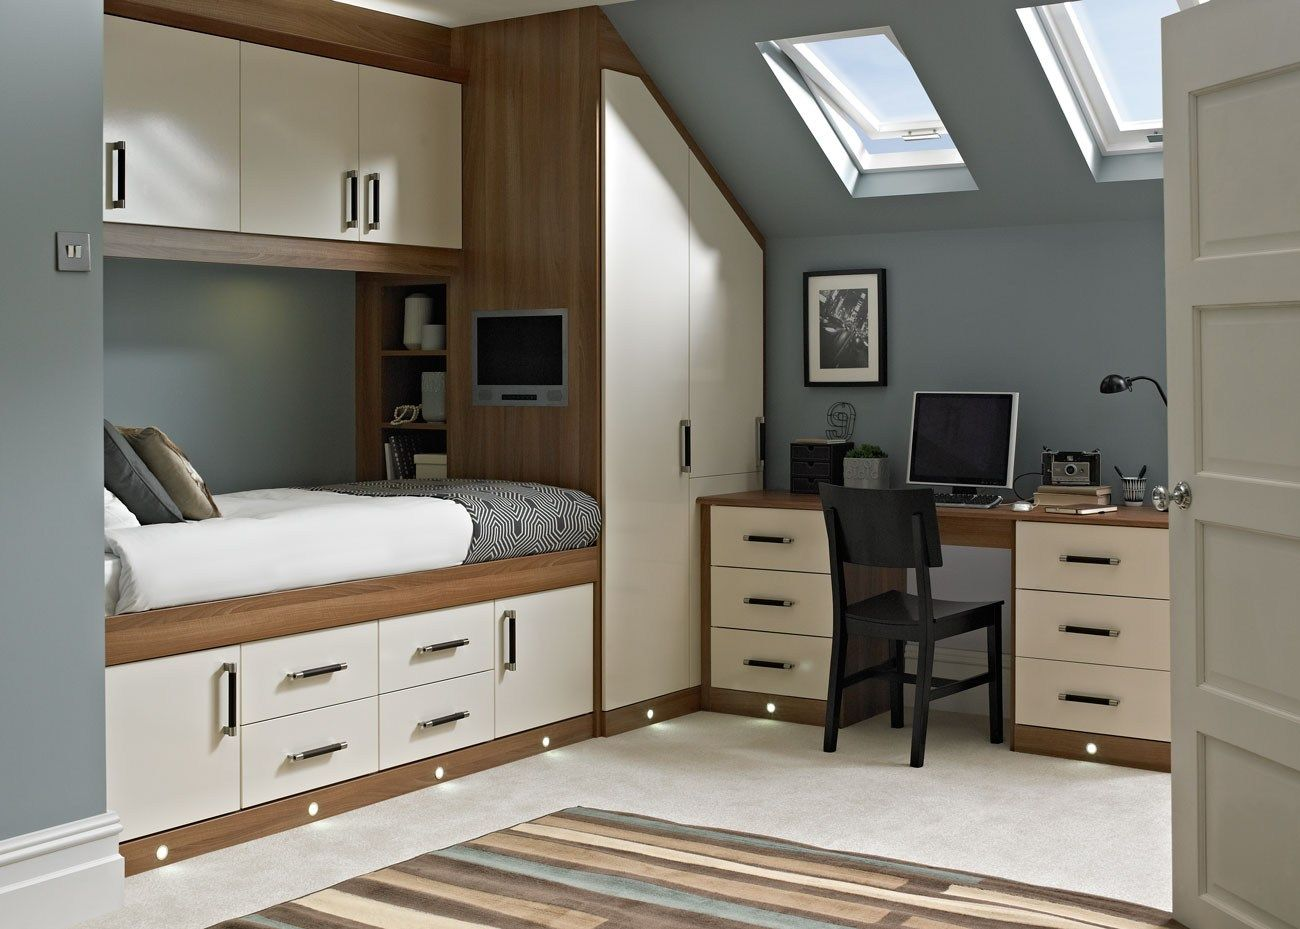 Box Room Wardrobe Espirit Cream Bedroom Fitted Bedrooms From Betta Living Bed